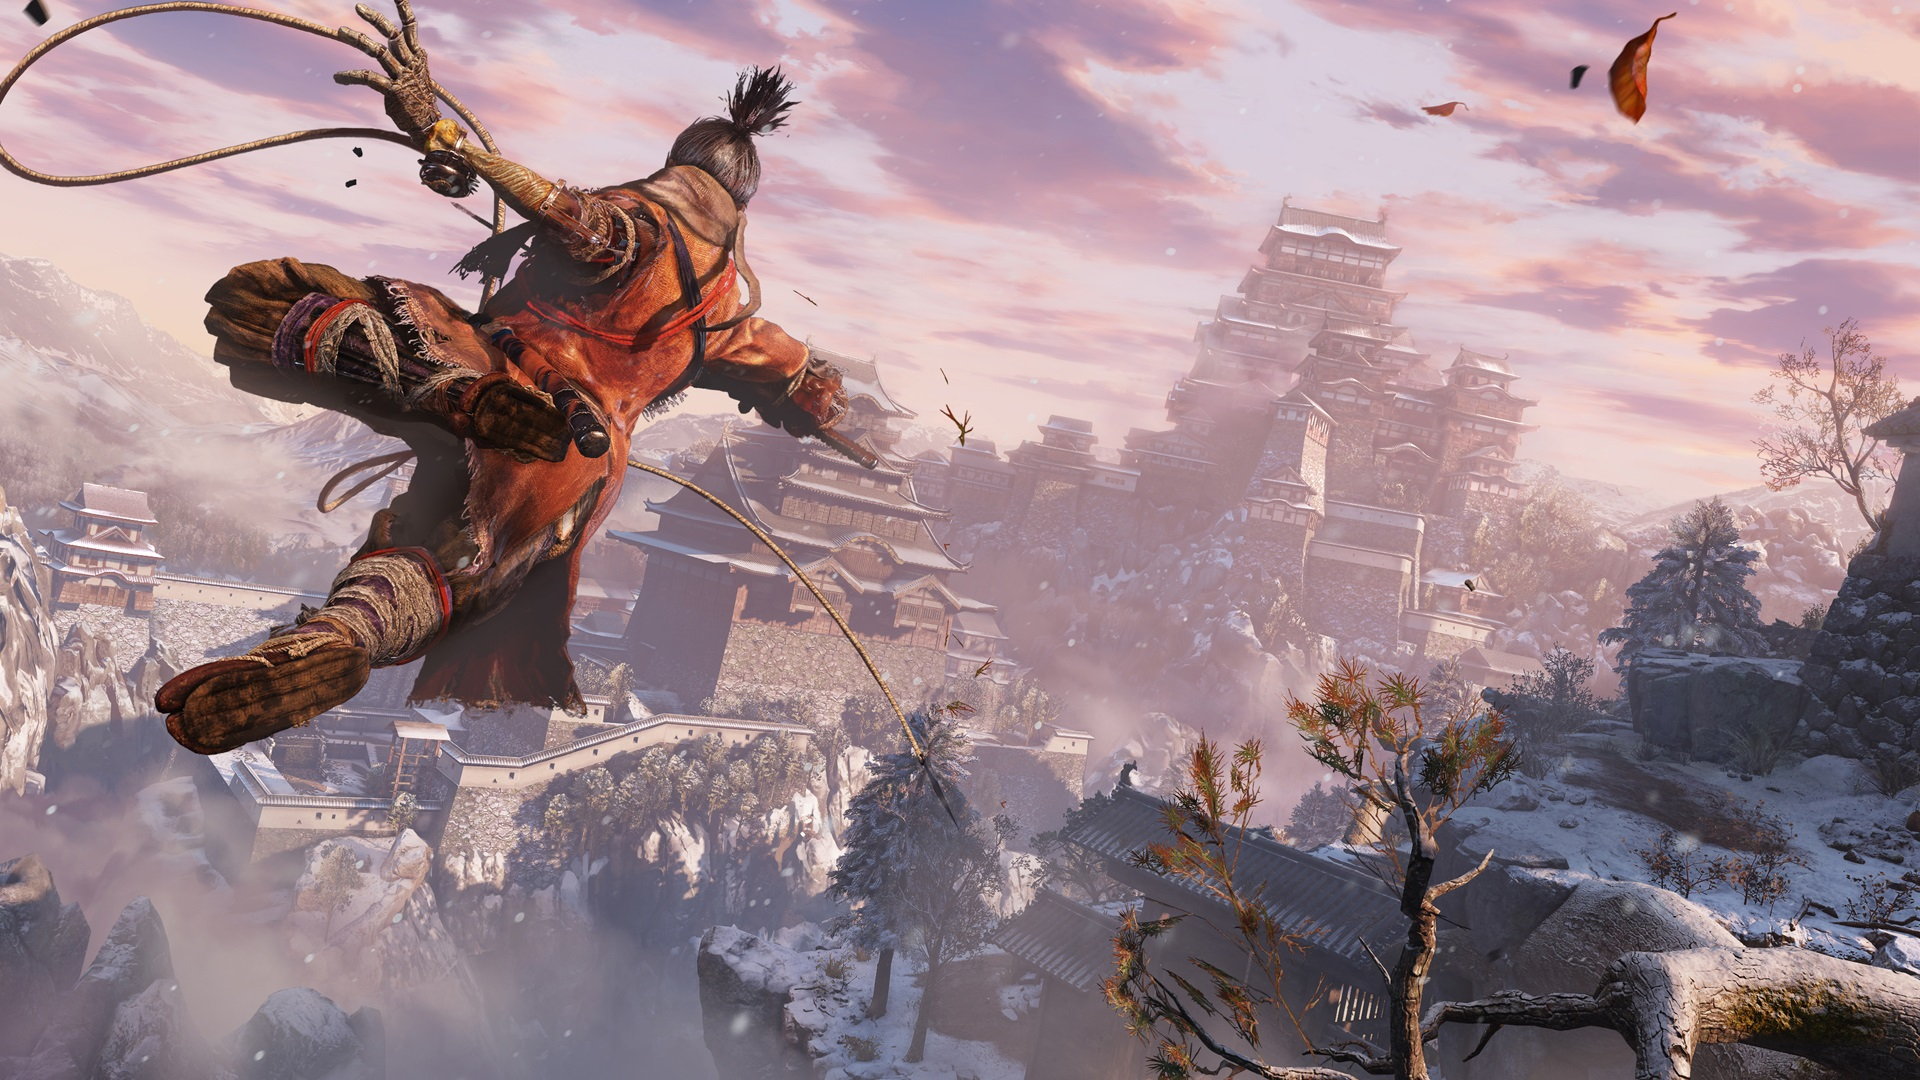 Sekiro: Shadows Die Twice will be 'on the higher end of spectrum of freedom' compared to previous From efforts screenshot